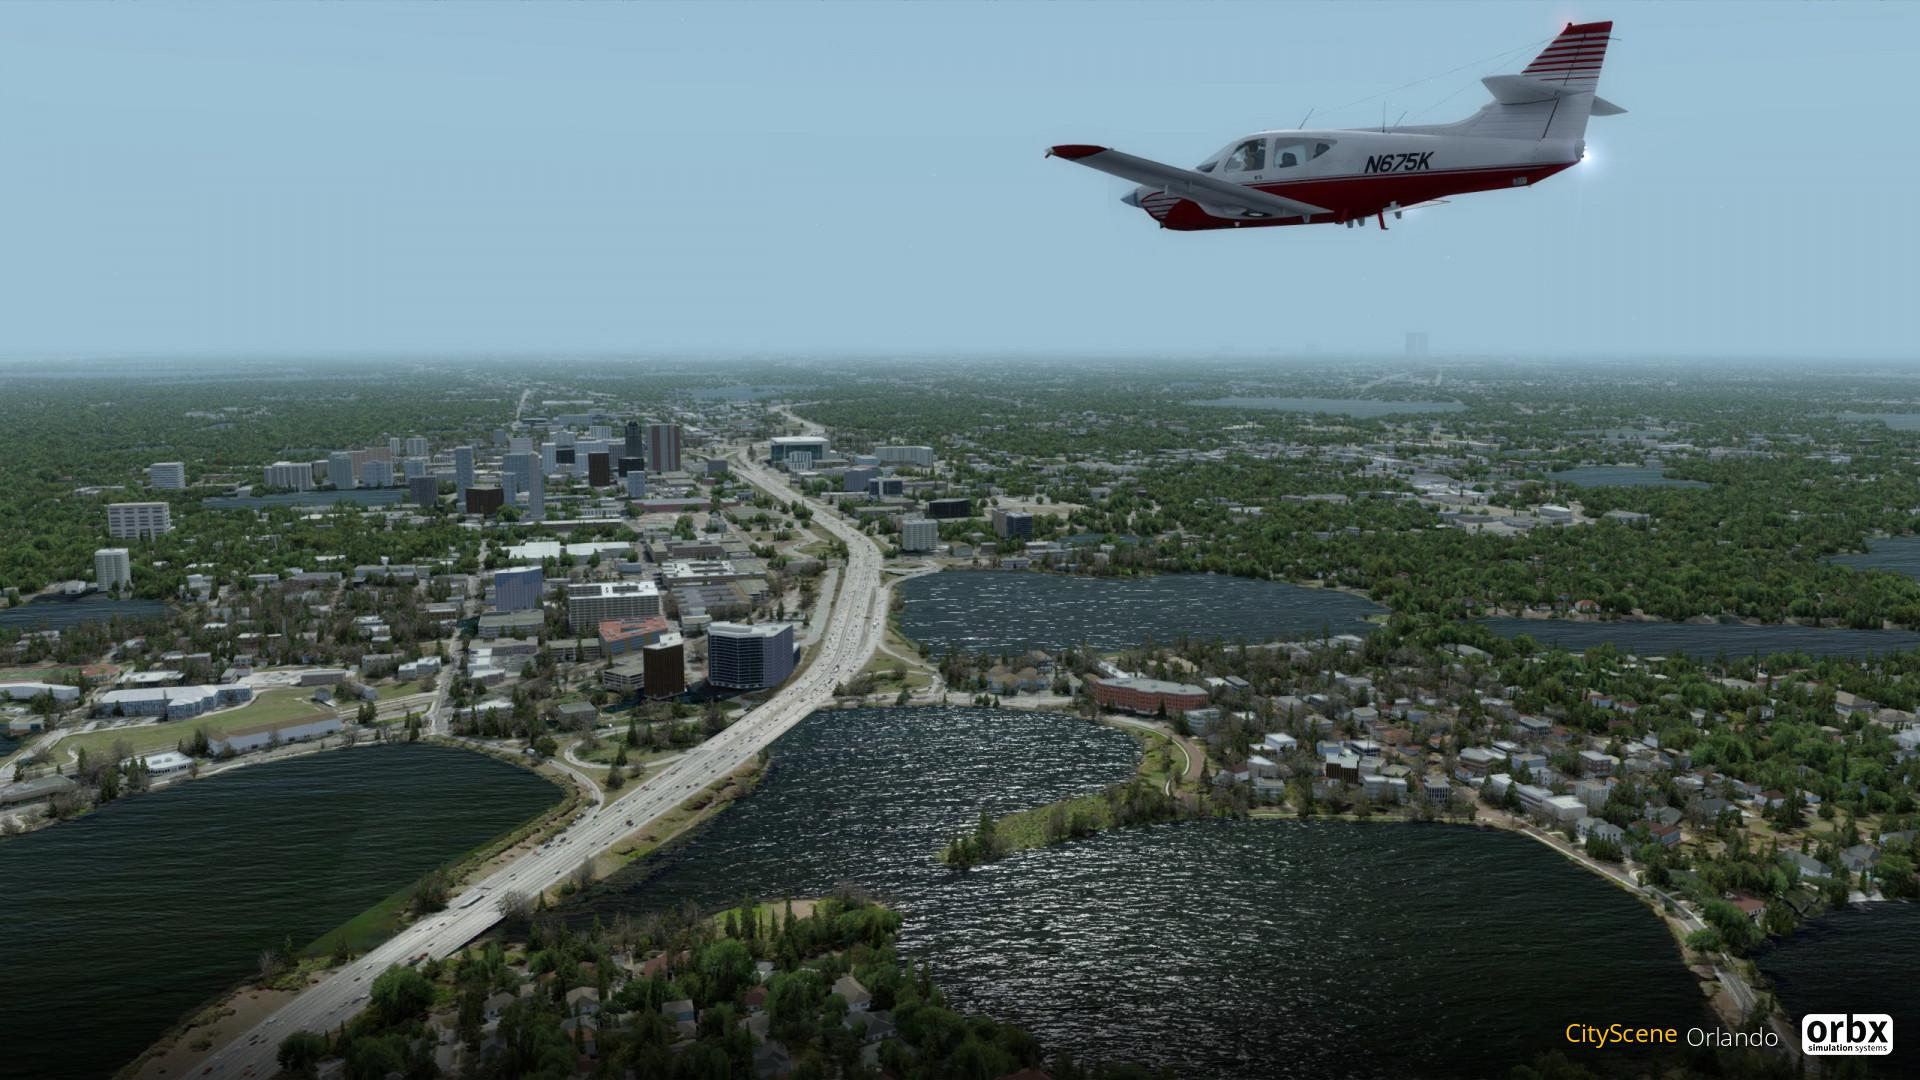 Introducing CityScene Orlando! - Preview Screenshots and